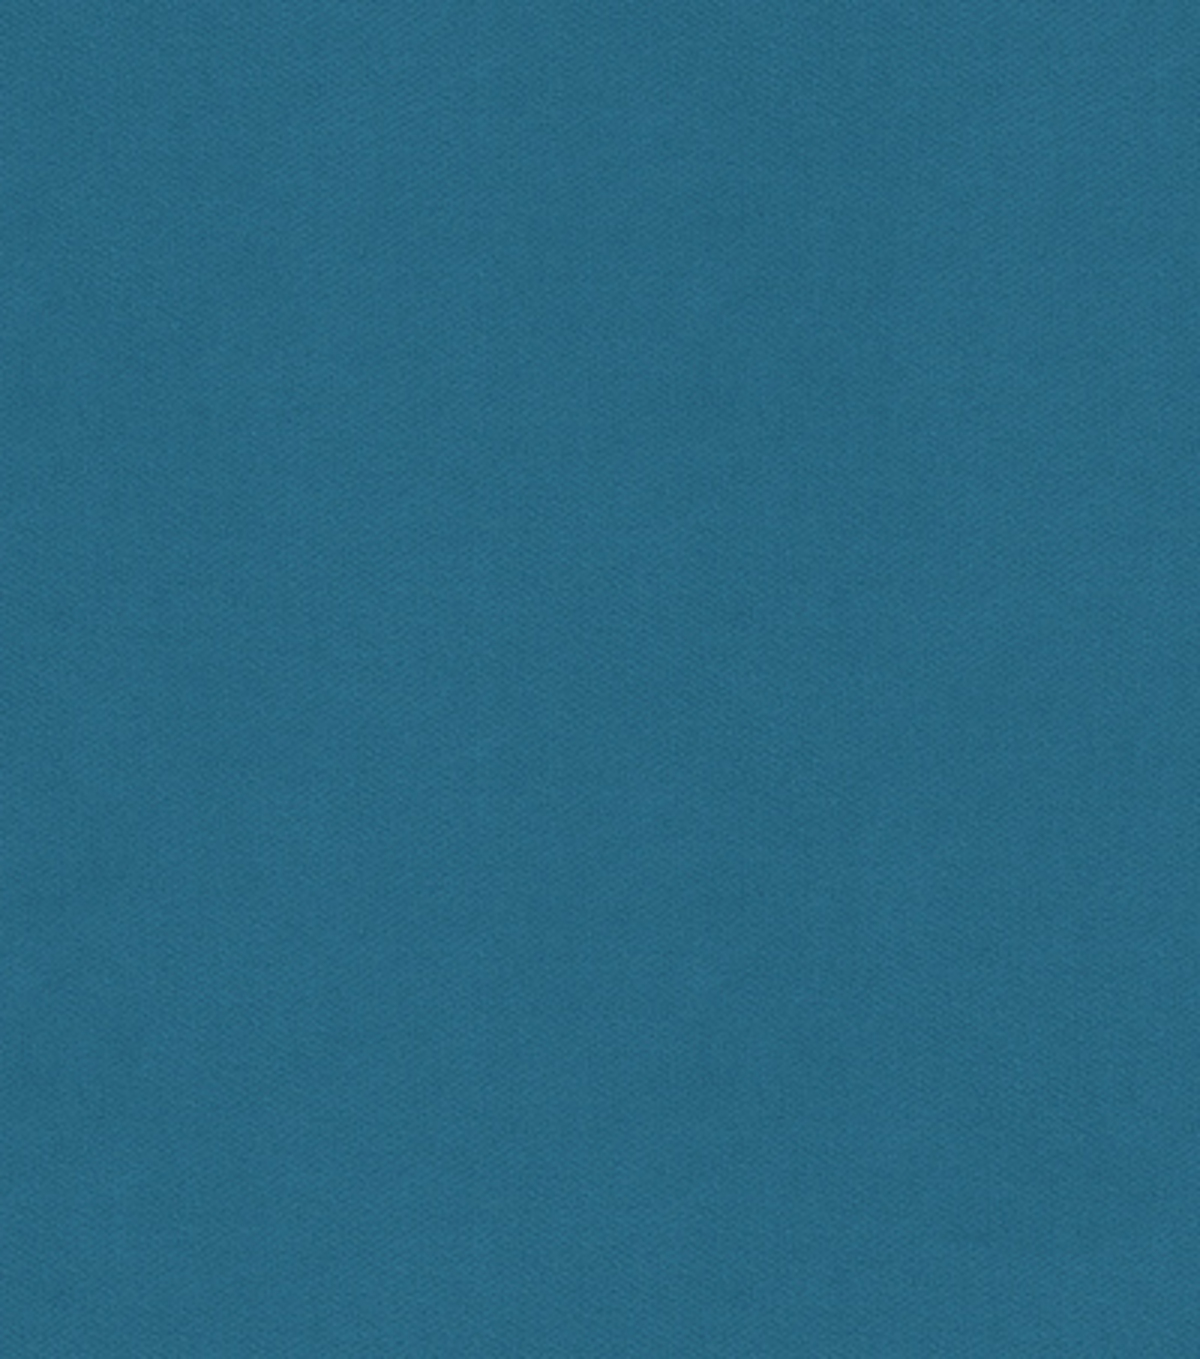 Home Decor 8\u0022x8\u0022 Fabric Swatch-Como-170-Cyan